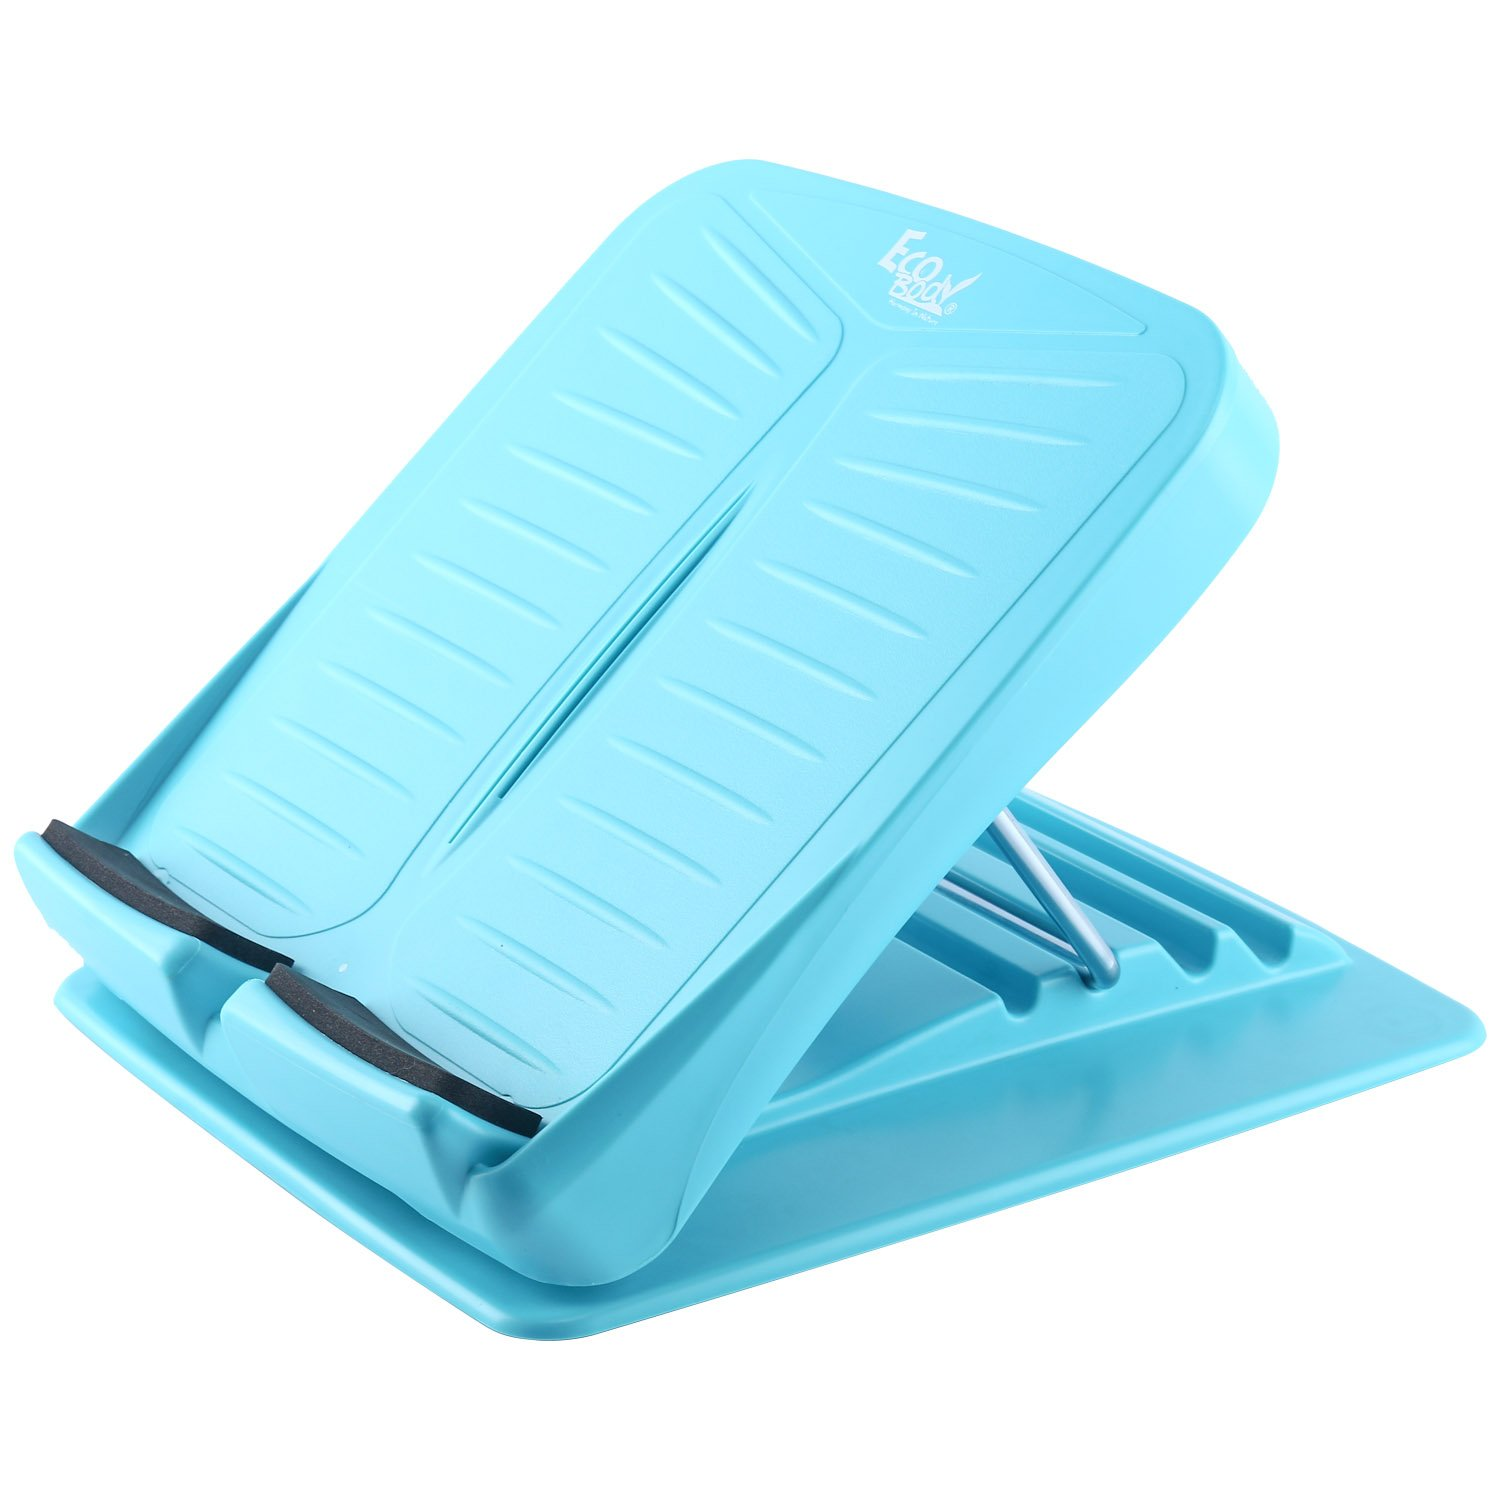 Yaegoo Portable Slant Board | Adjustable Incline Boards and Calf/Ankle Stretcher | Anti-Slip Design | 4 Positions Foot Stretch Wedge Board (250 lb Capacity)